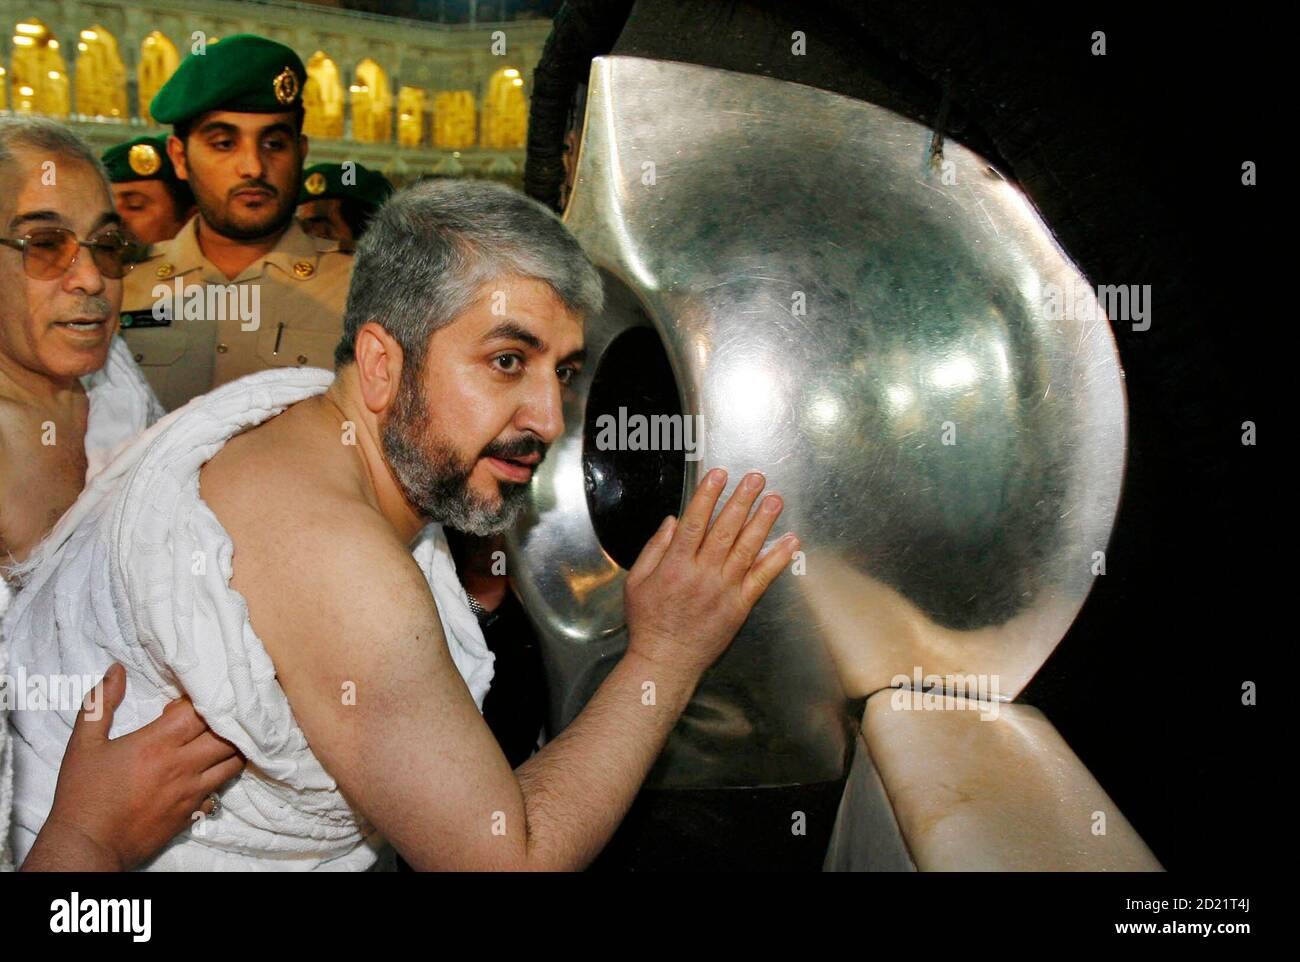 hamas-leader-khaled-meshaal-prays-in-front-of-the-black-stone-inside-the-kaaba-in-the-grand-mosque-in-mecca-early-february-9-2007-rival-palestinian-factions-signed-a-deal-to-form-a-unity-government-hoping-to-end-bloodshed-between-their-followers-and-to-win-back-western-aid-halted-because-of-the-hostility-of-hamas-to-israel-reuterssuhaib-salem-saudi-arabia-2D21T4J.jpg